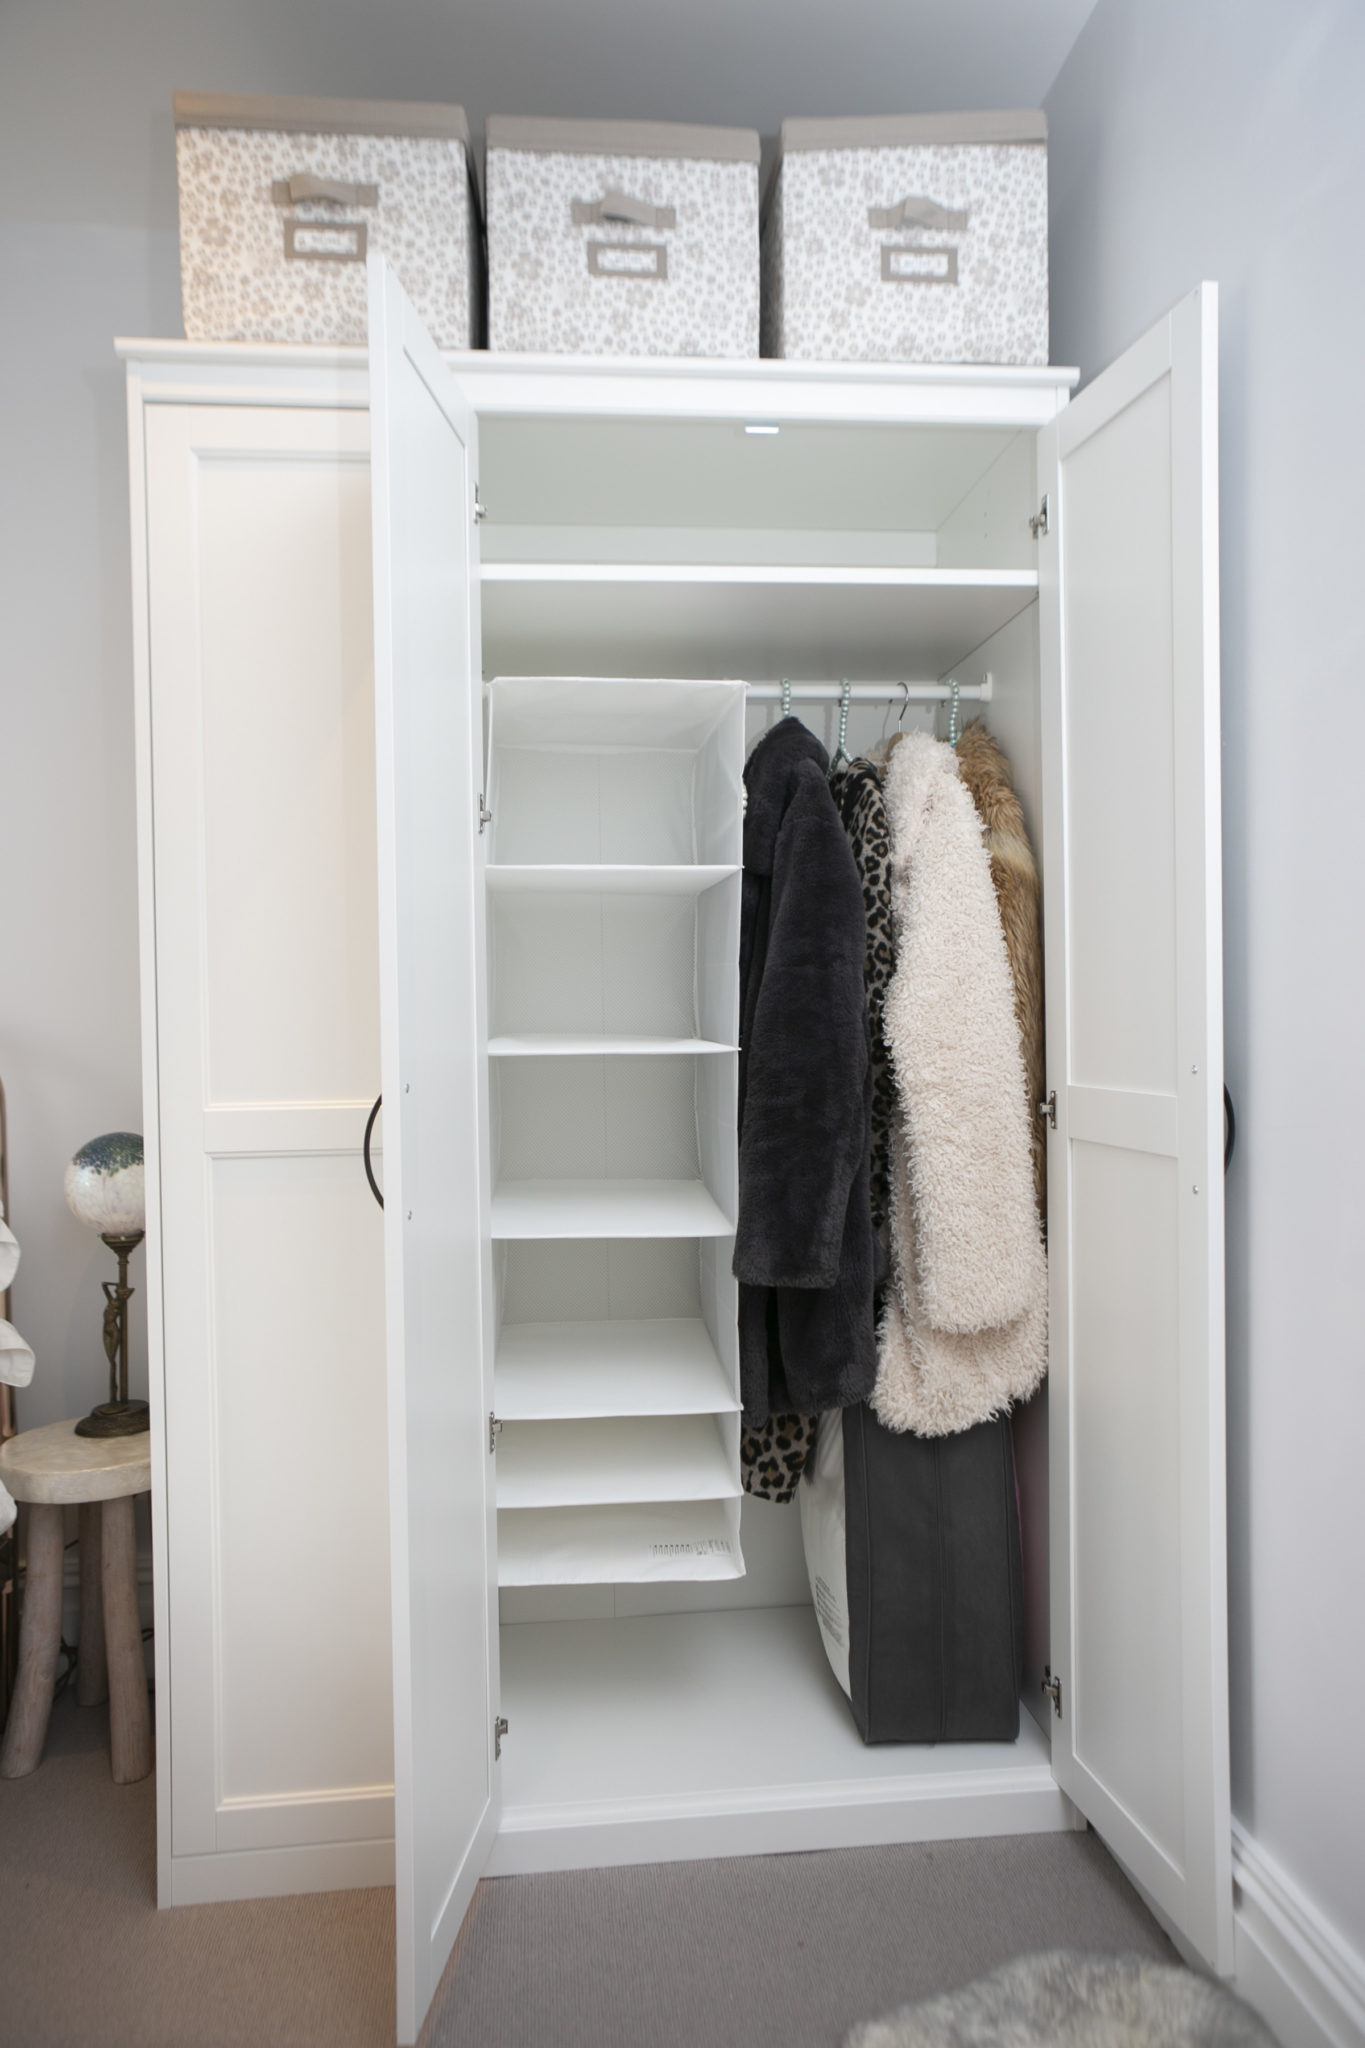 Wardrobe storage tidy and uncluttered